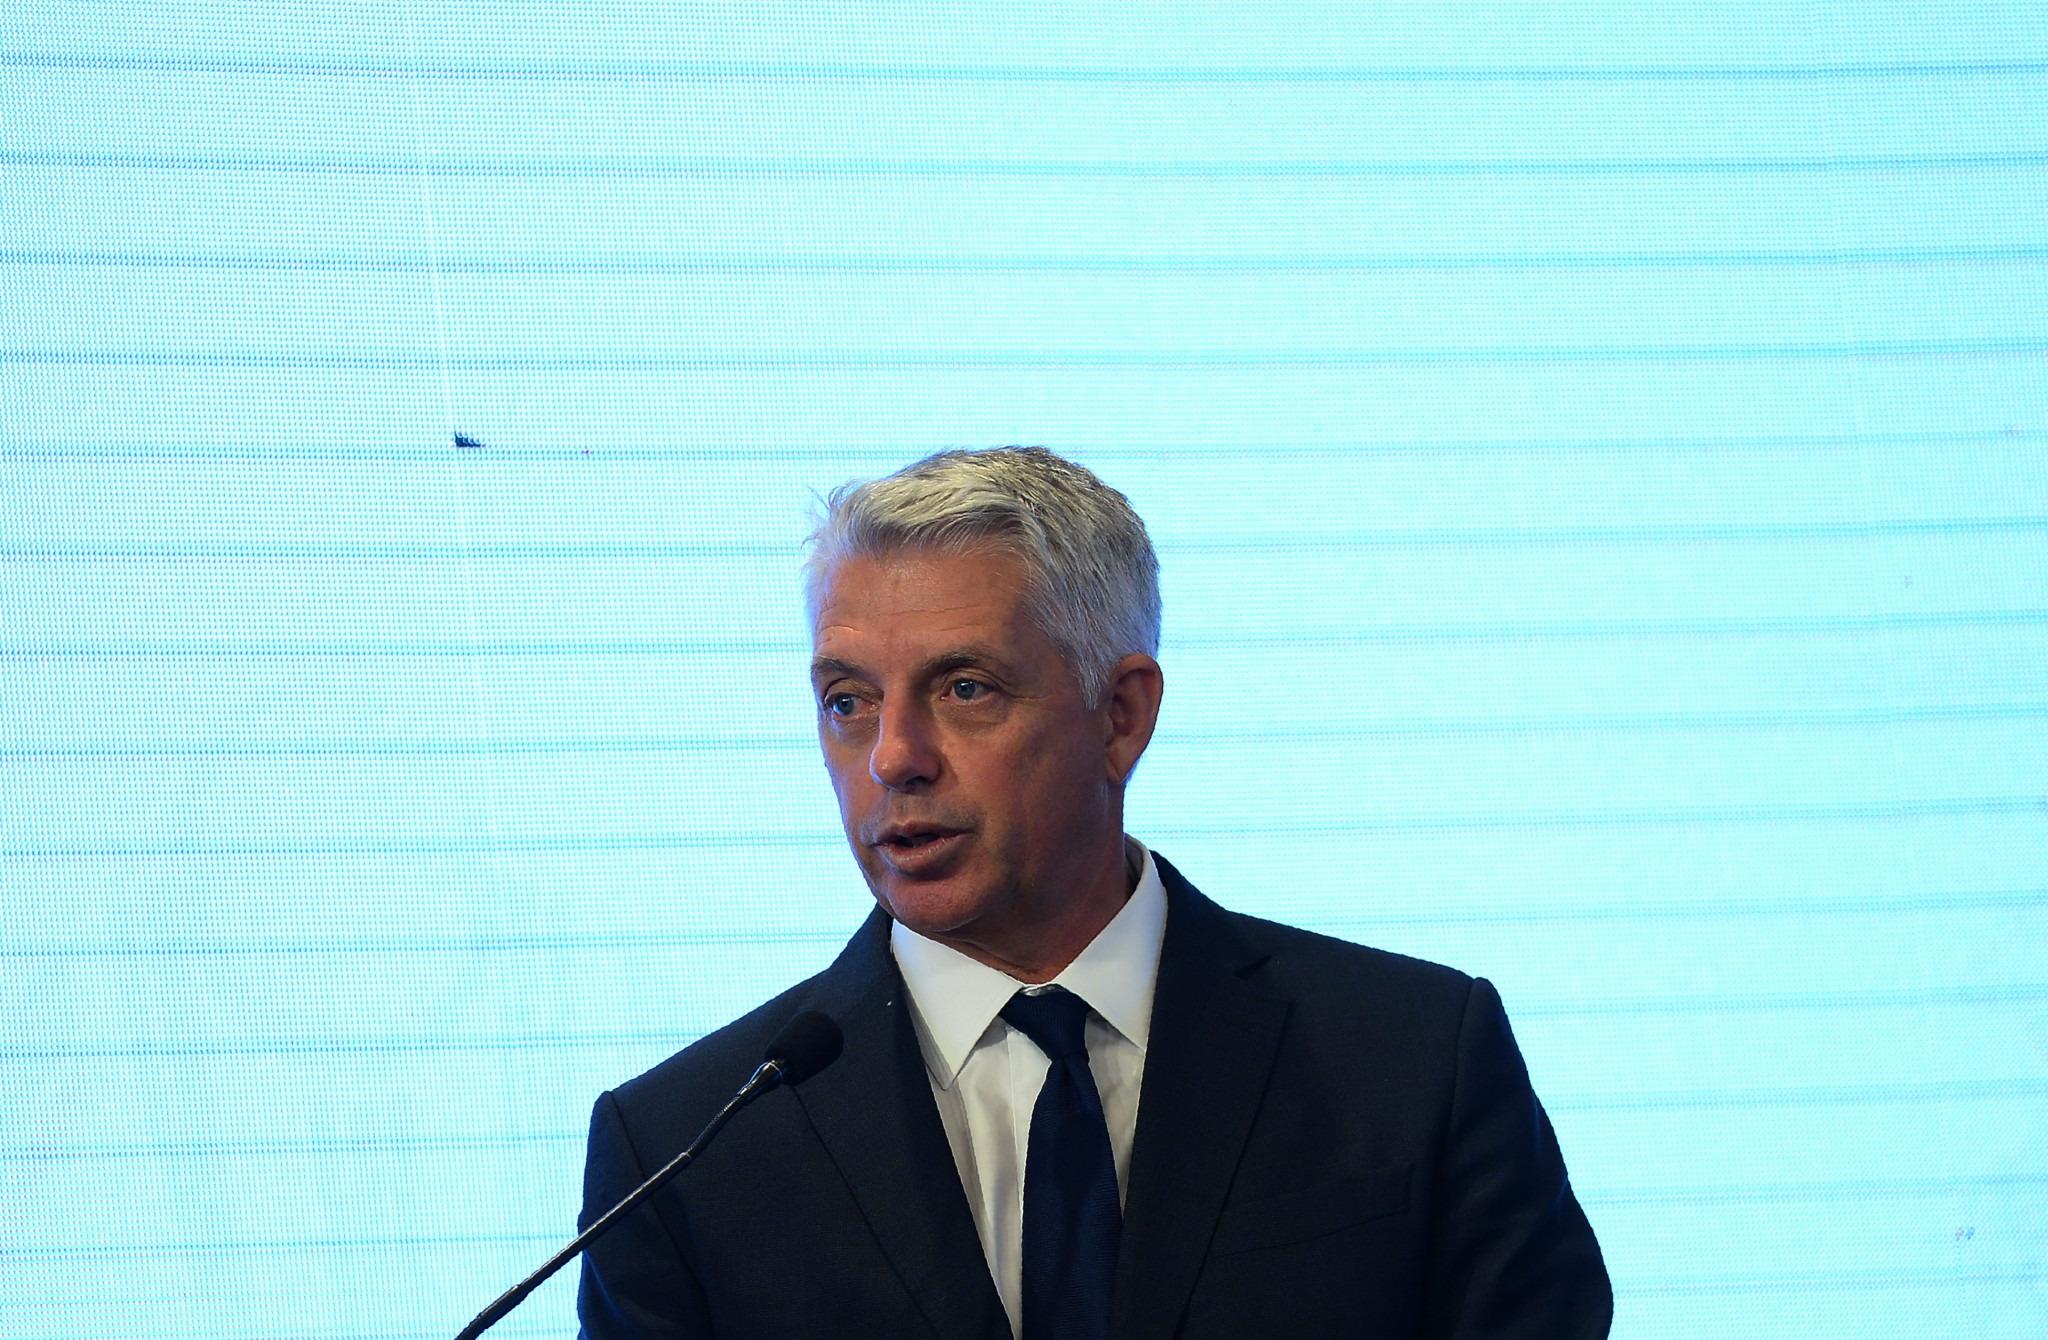 ICC chief executive David Richardson said he was